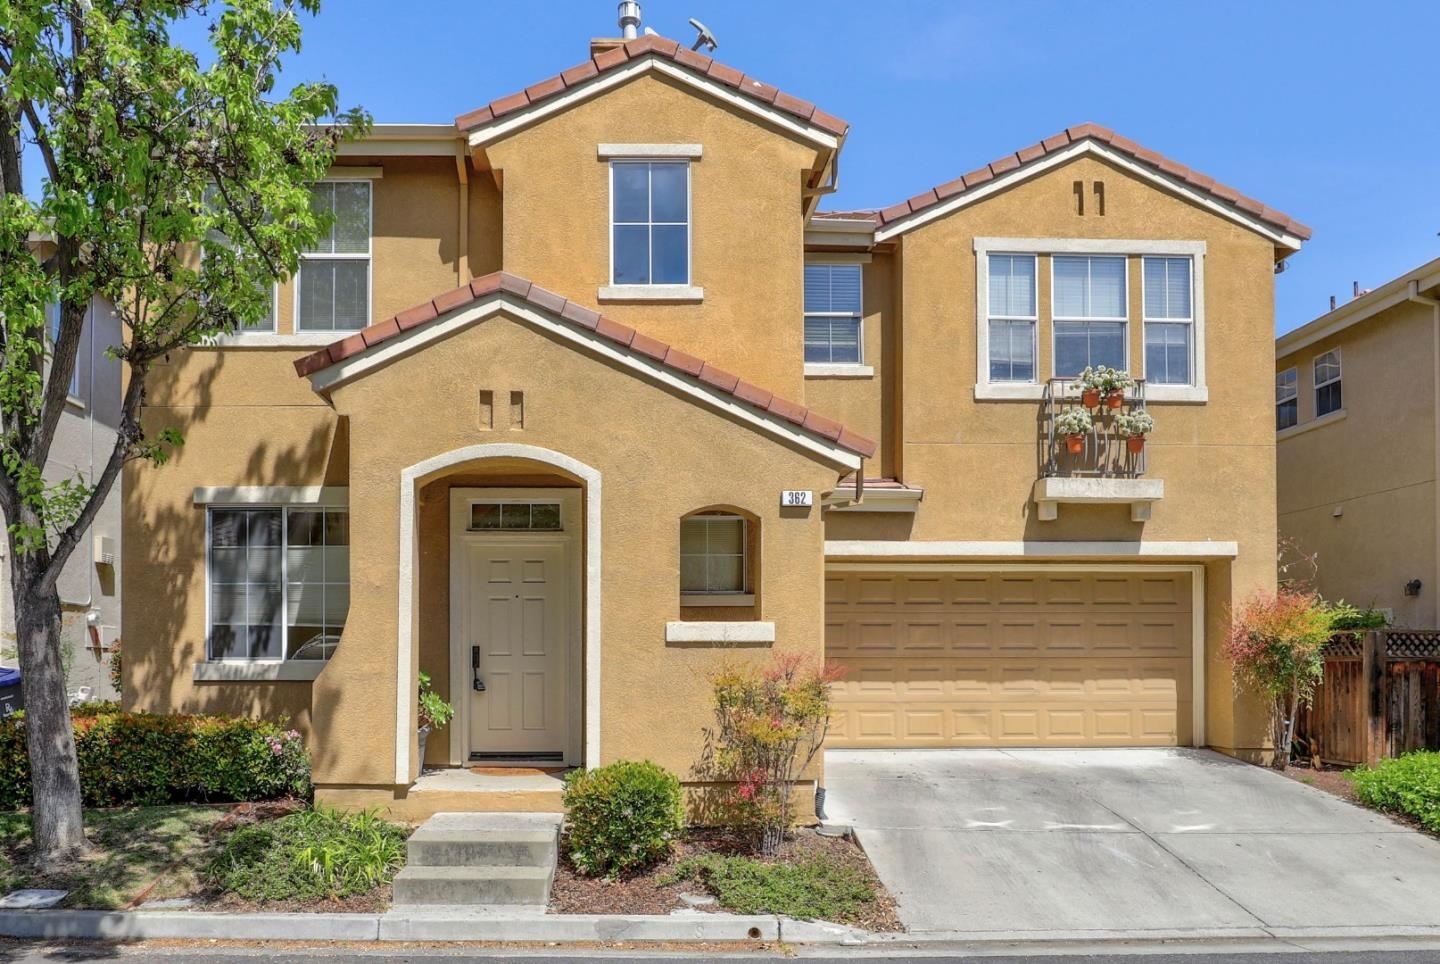 Photo for 362 Shelby Drive, MOUNTAIN VIEW, CA 94043 (MLS # ML81841145)